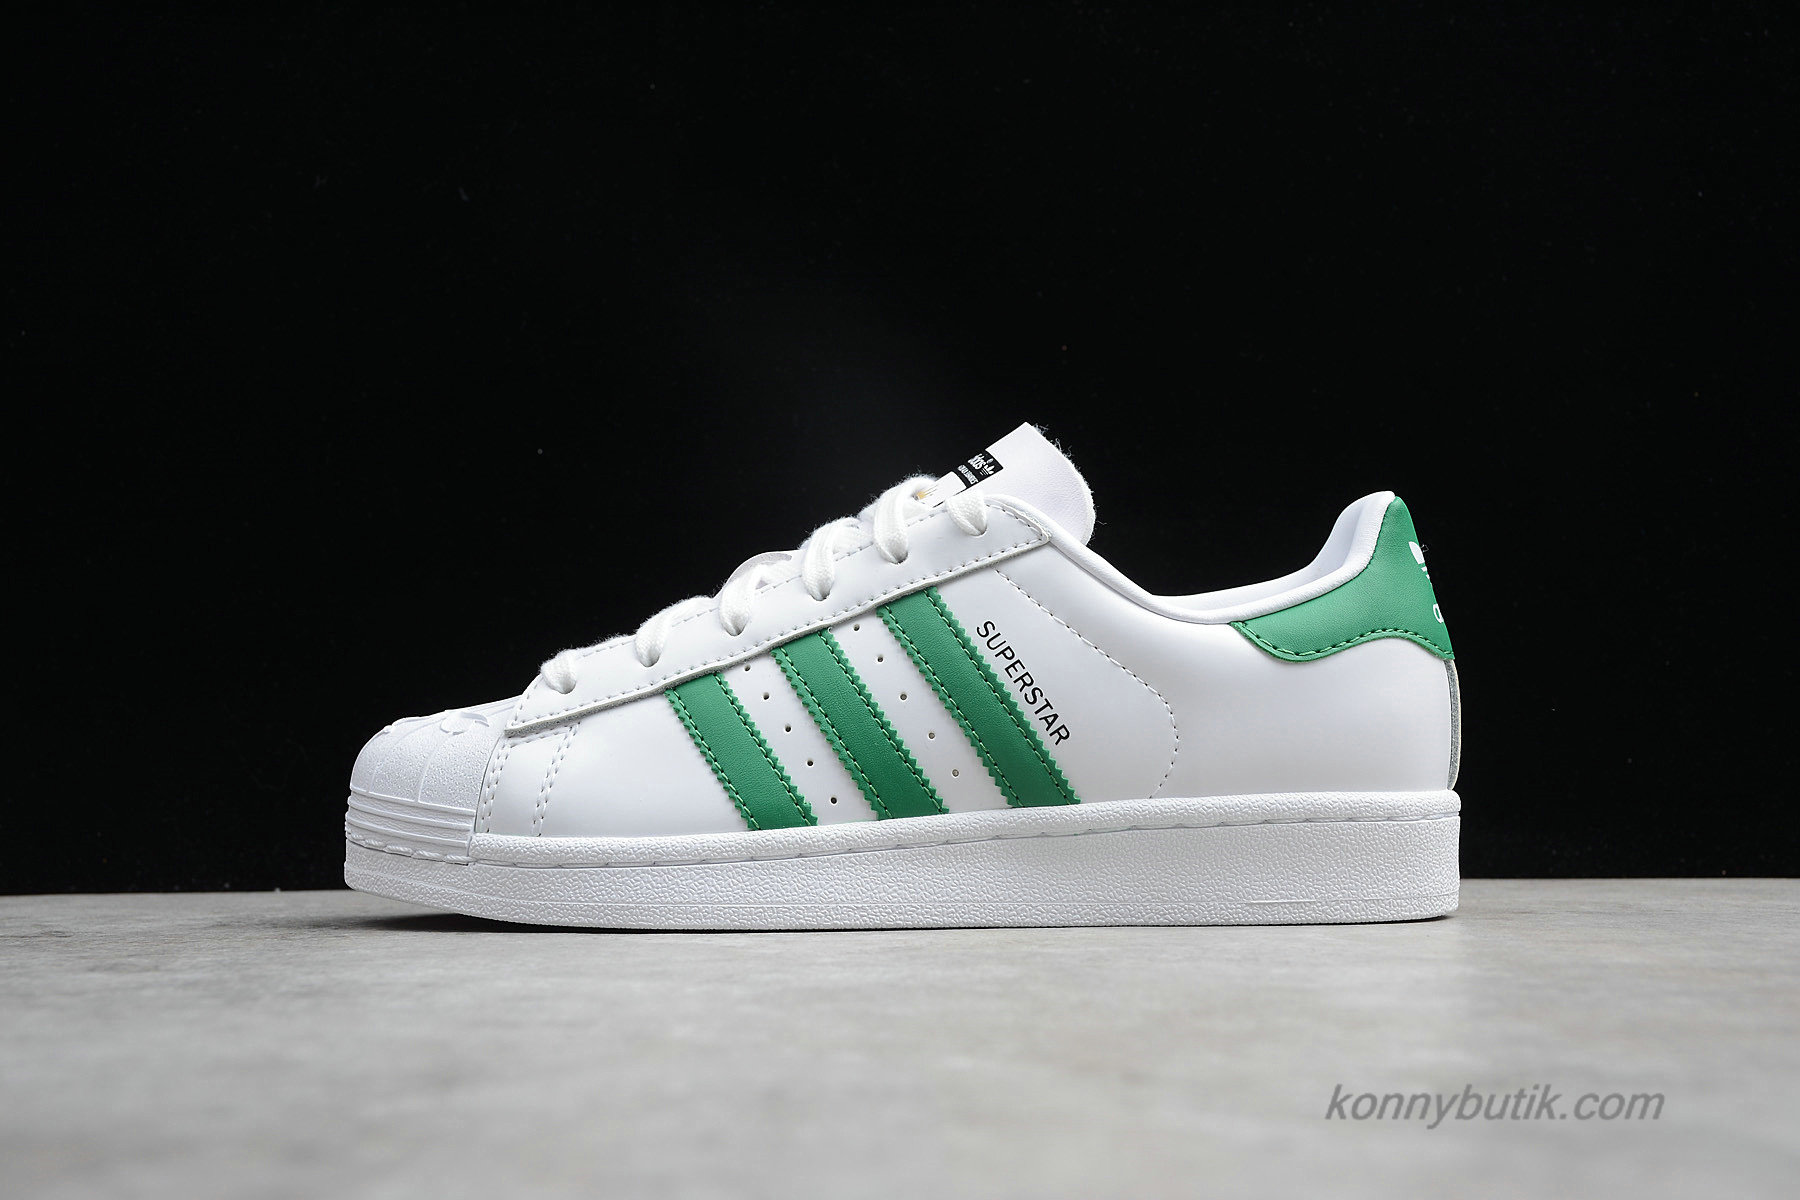 Adidas Originals Superstar Nigo Bearfoot Unisex Sko Hvid / Grøn (S83385)